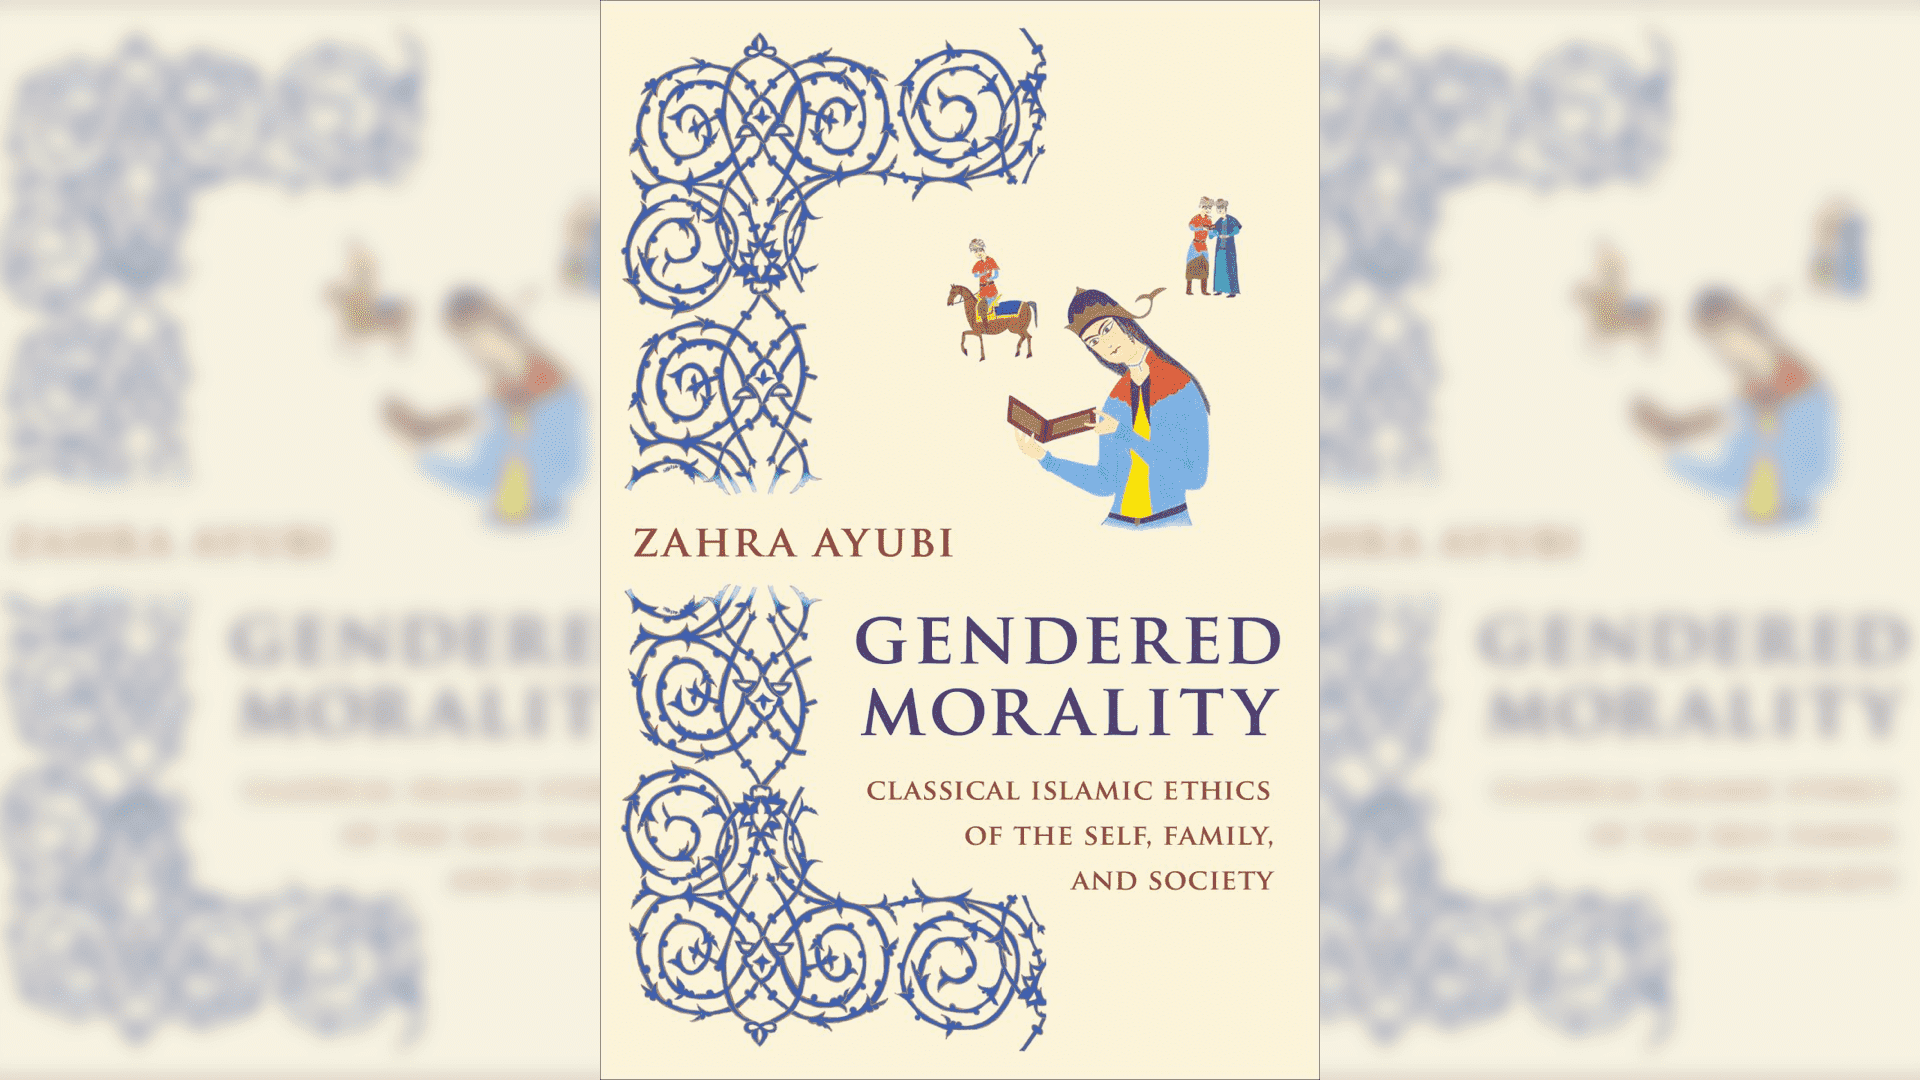 Gendered Morality: Classical Islamic Ethics of the Self, Family, and Society